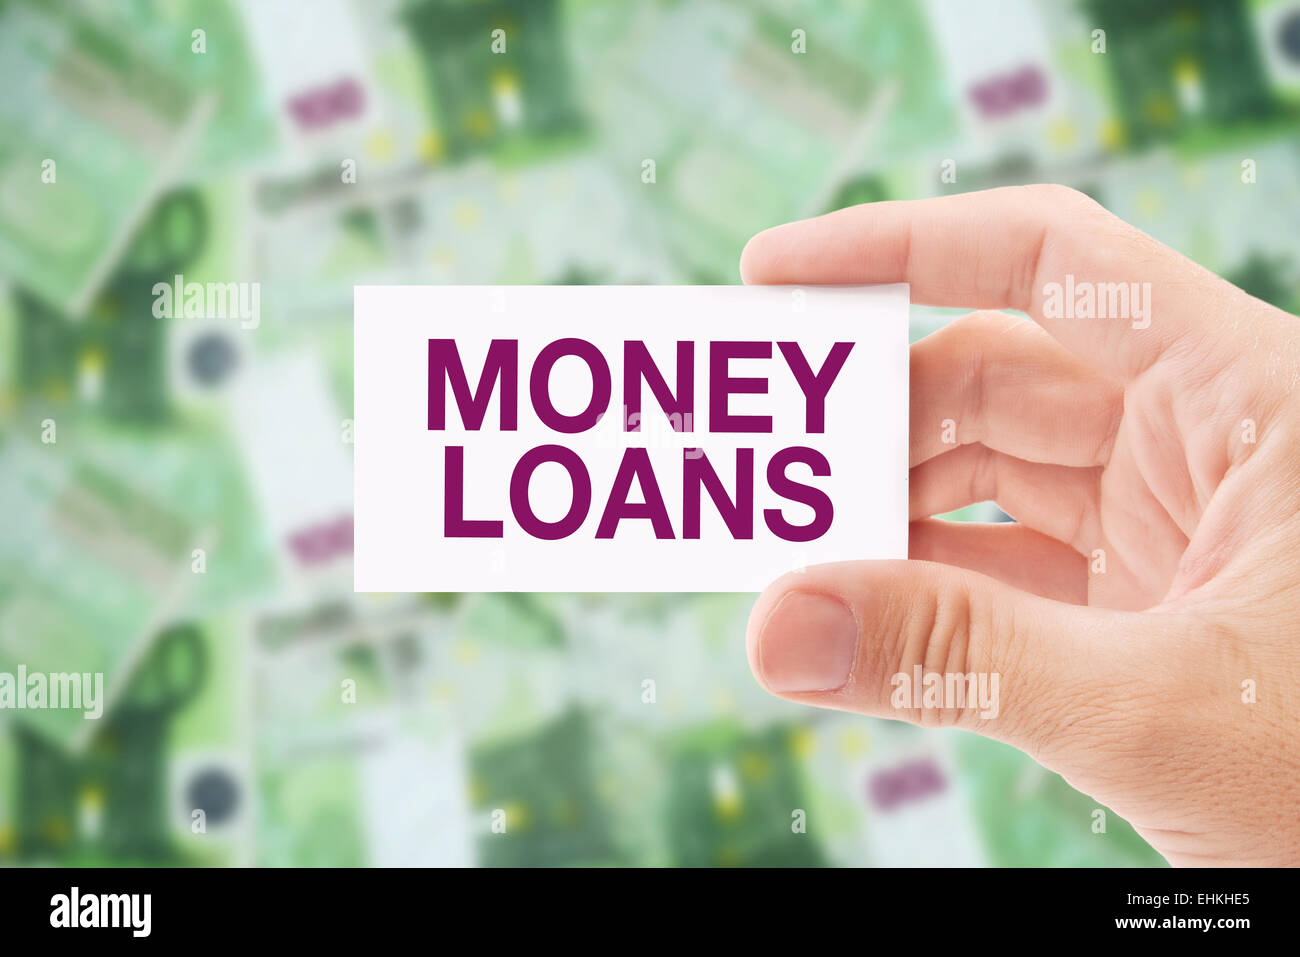 Man Holding Business Card with Money Loan Title, Euro Banknotes ...